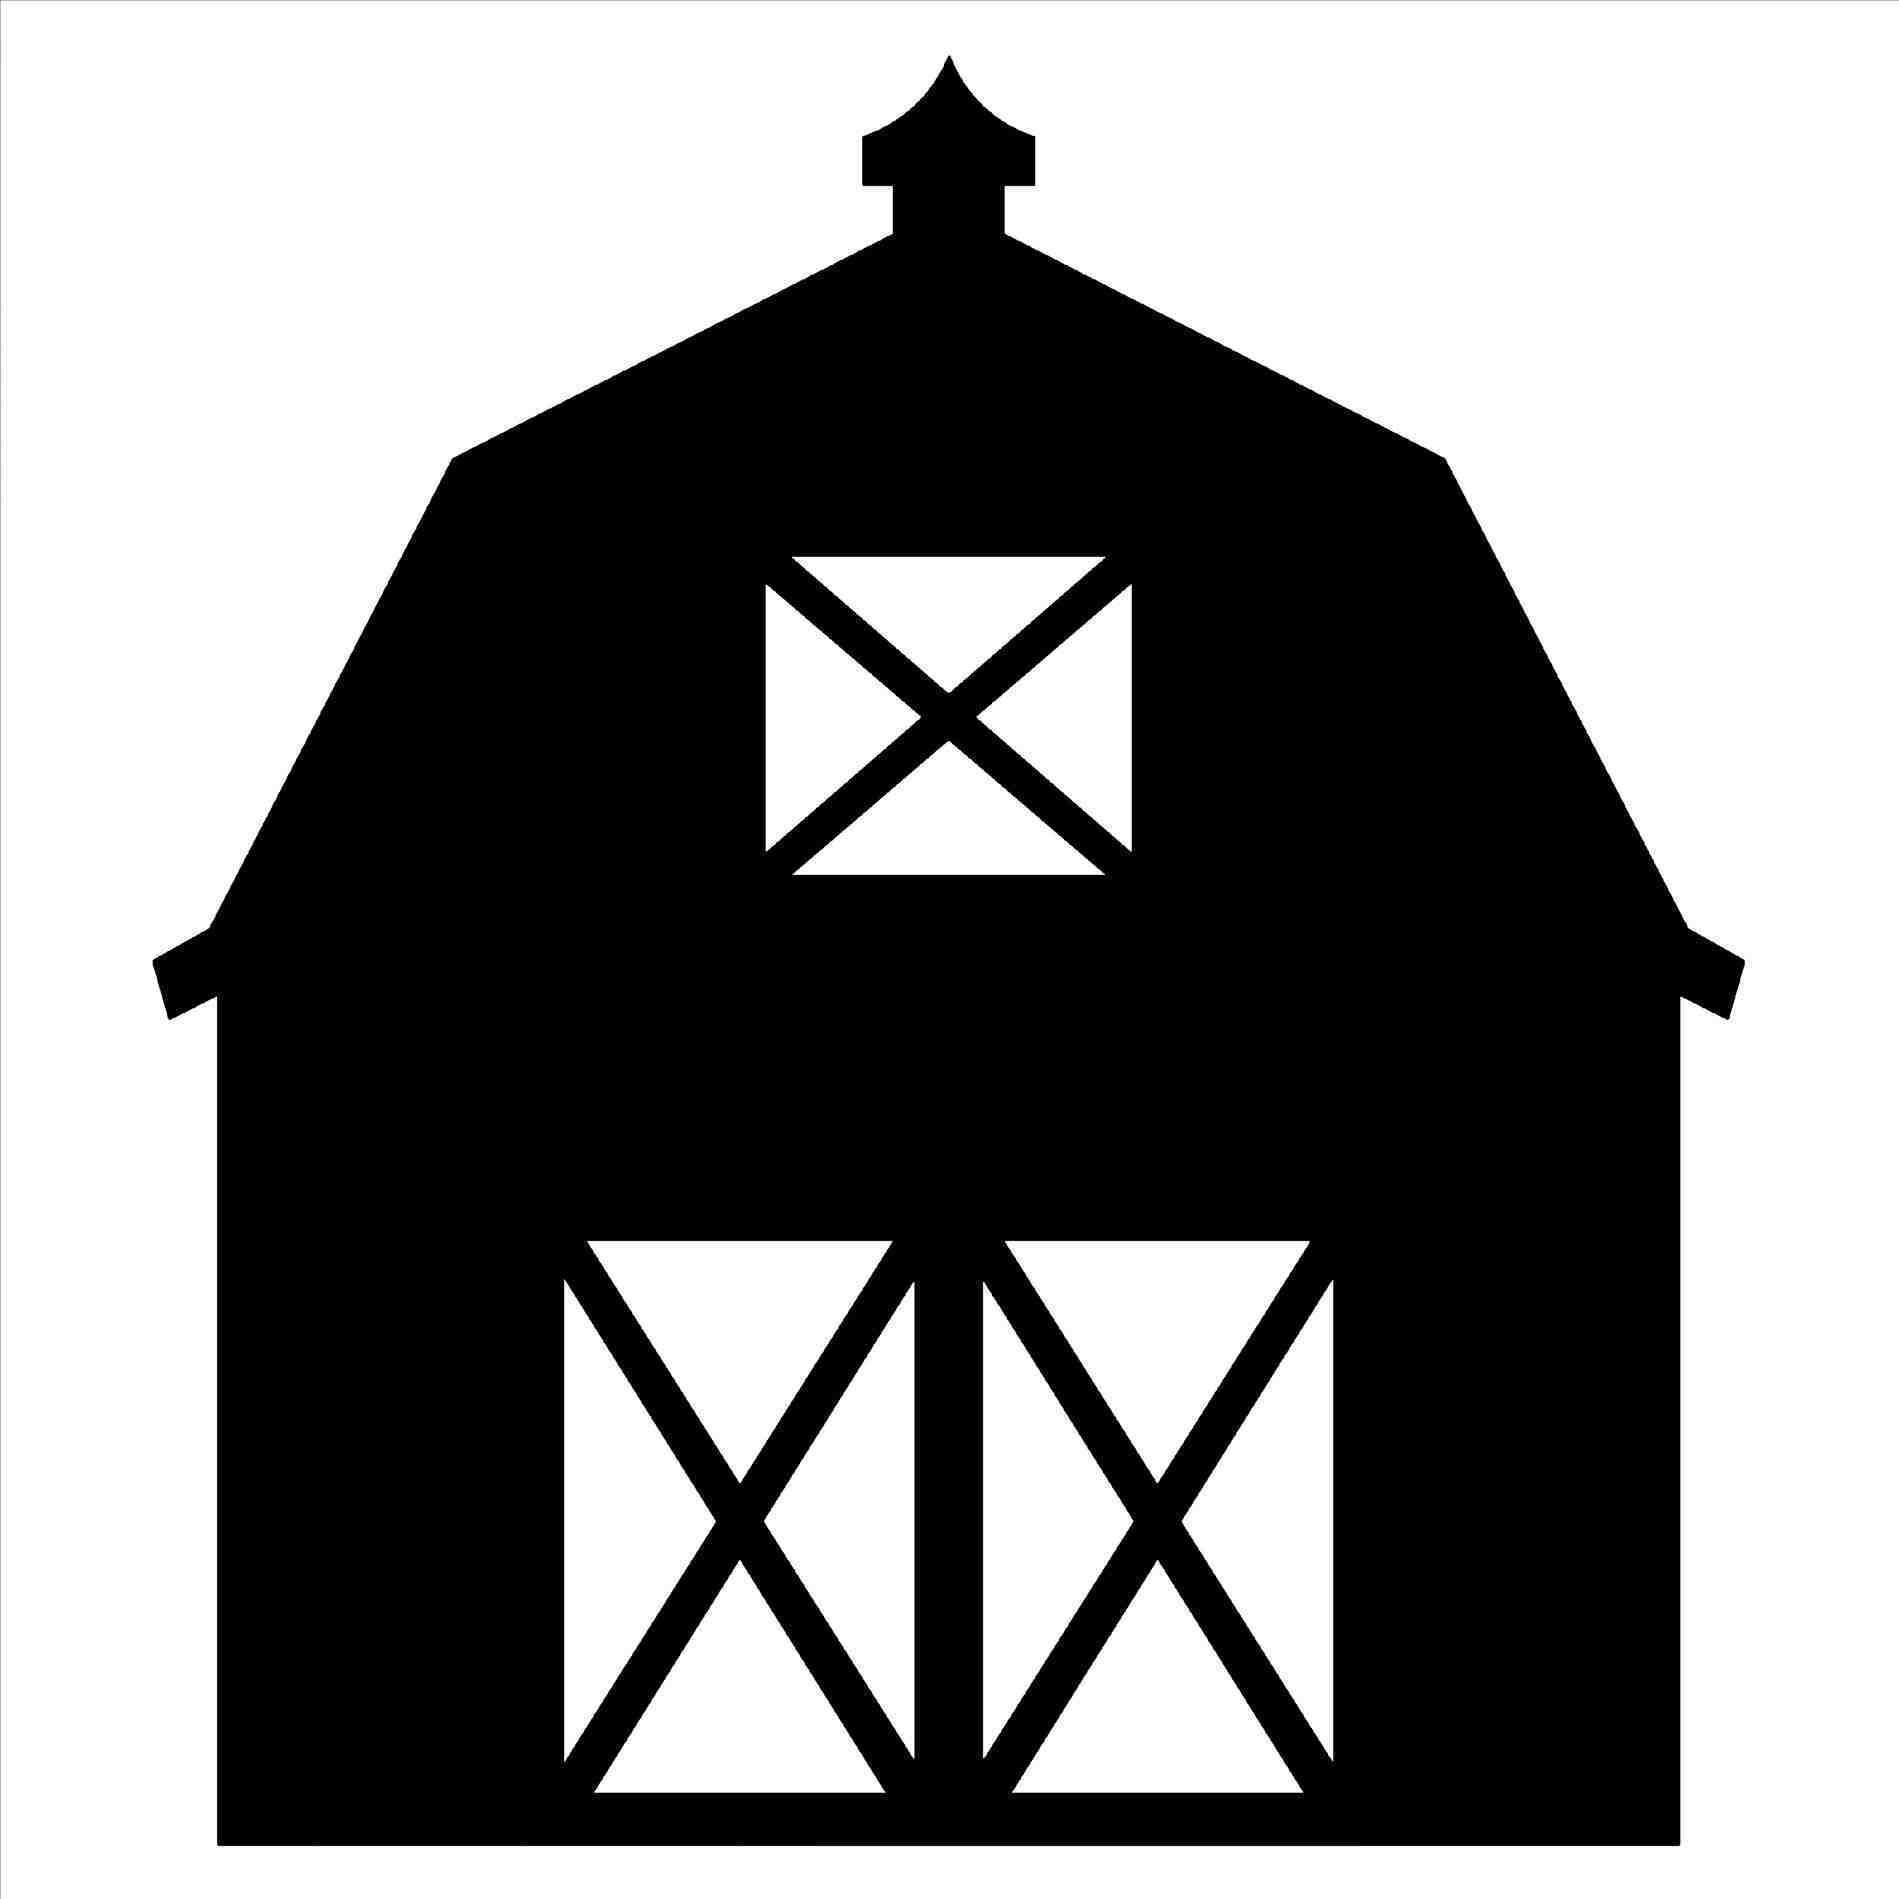 Farm at getdrawings com. Barn clipart silhouette